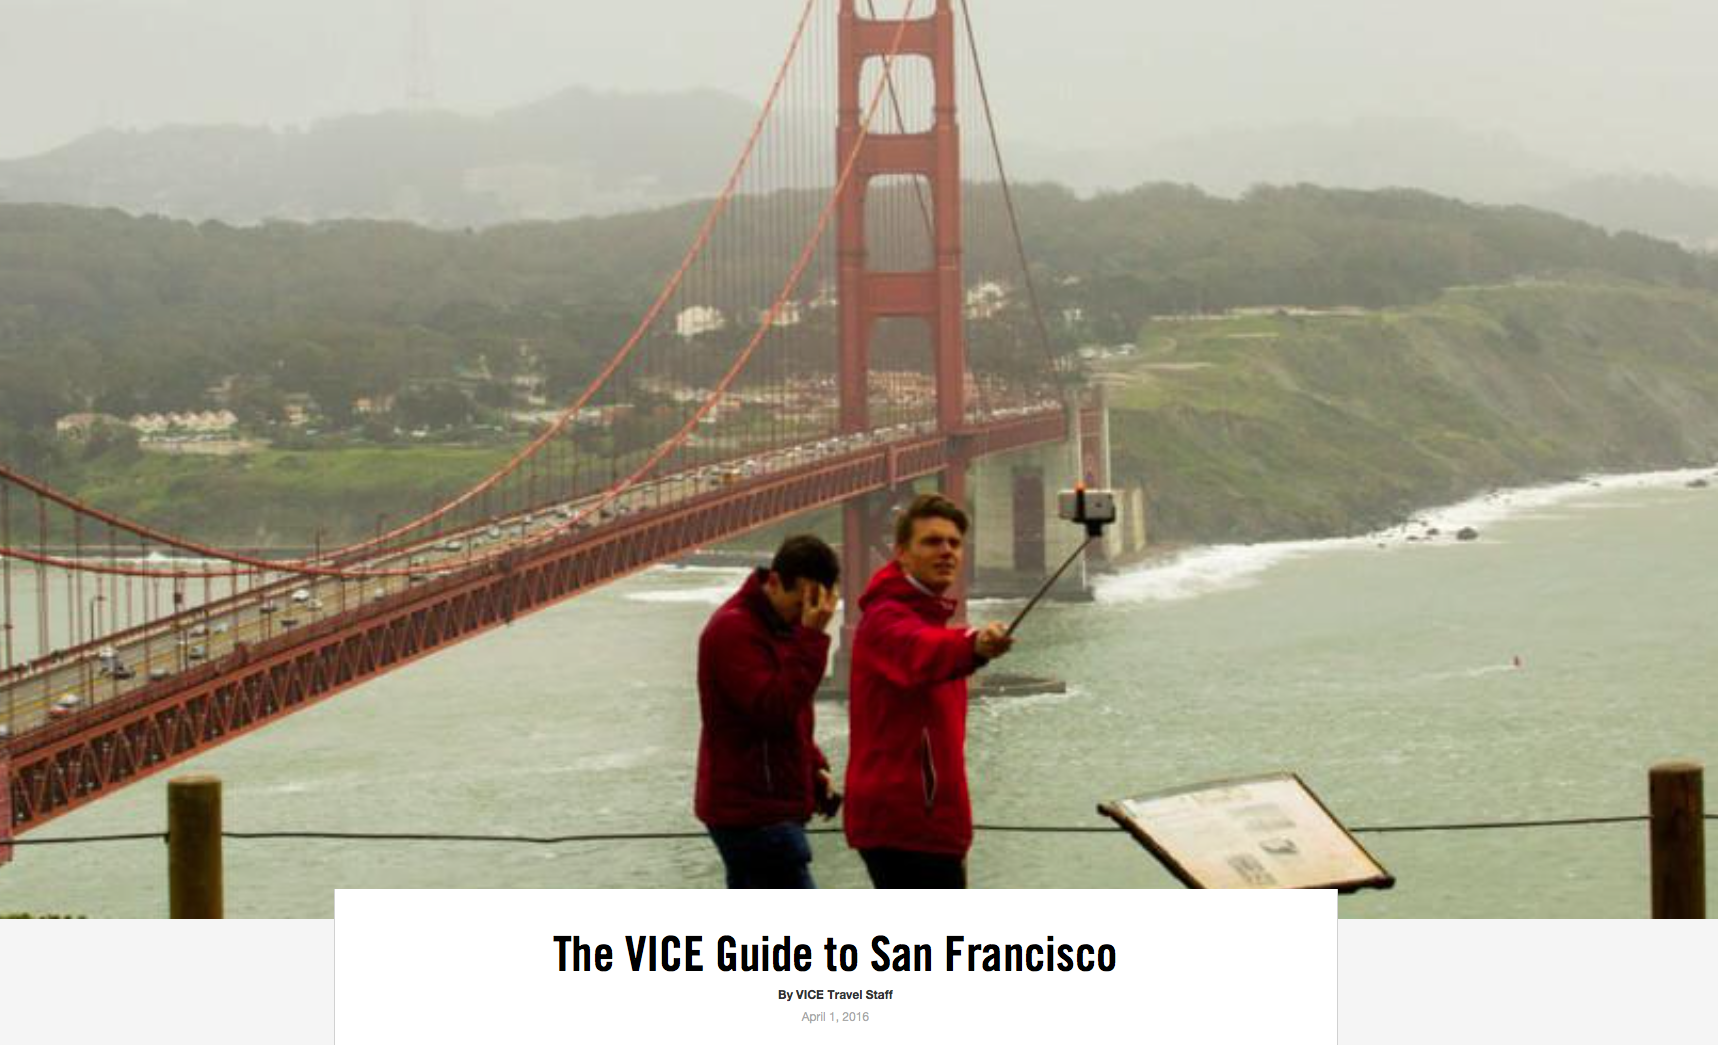 The VICE Guide to San Francisco